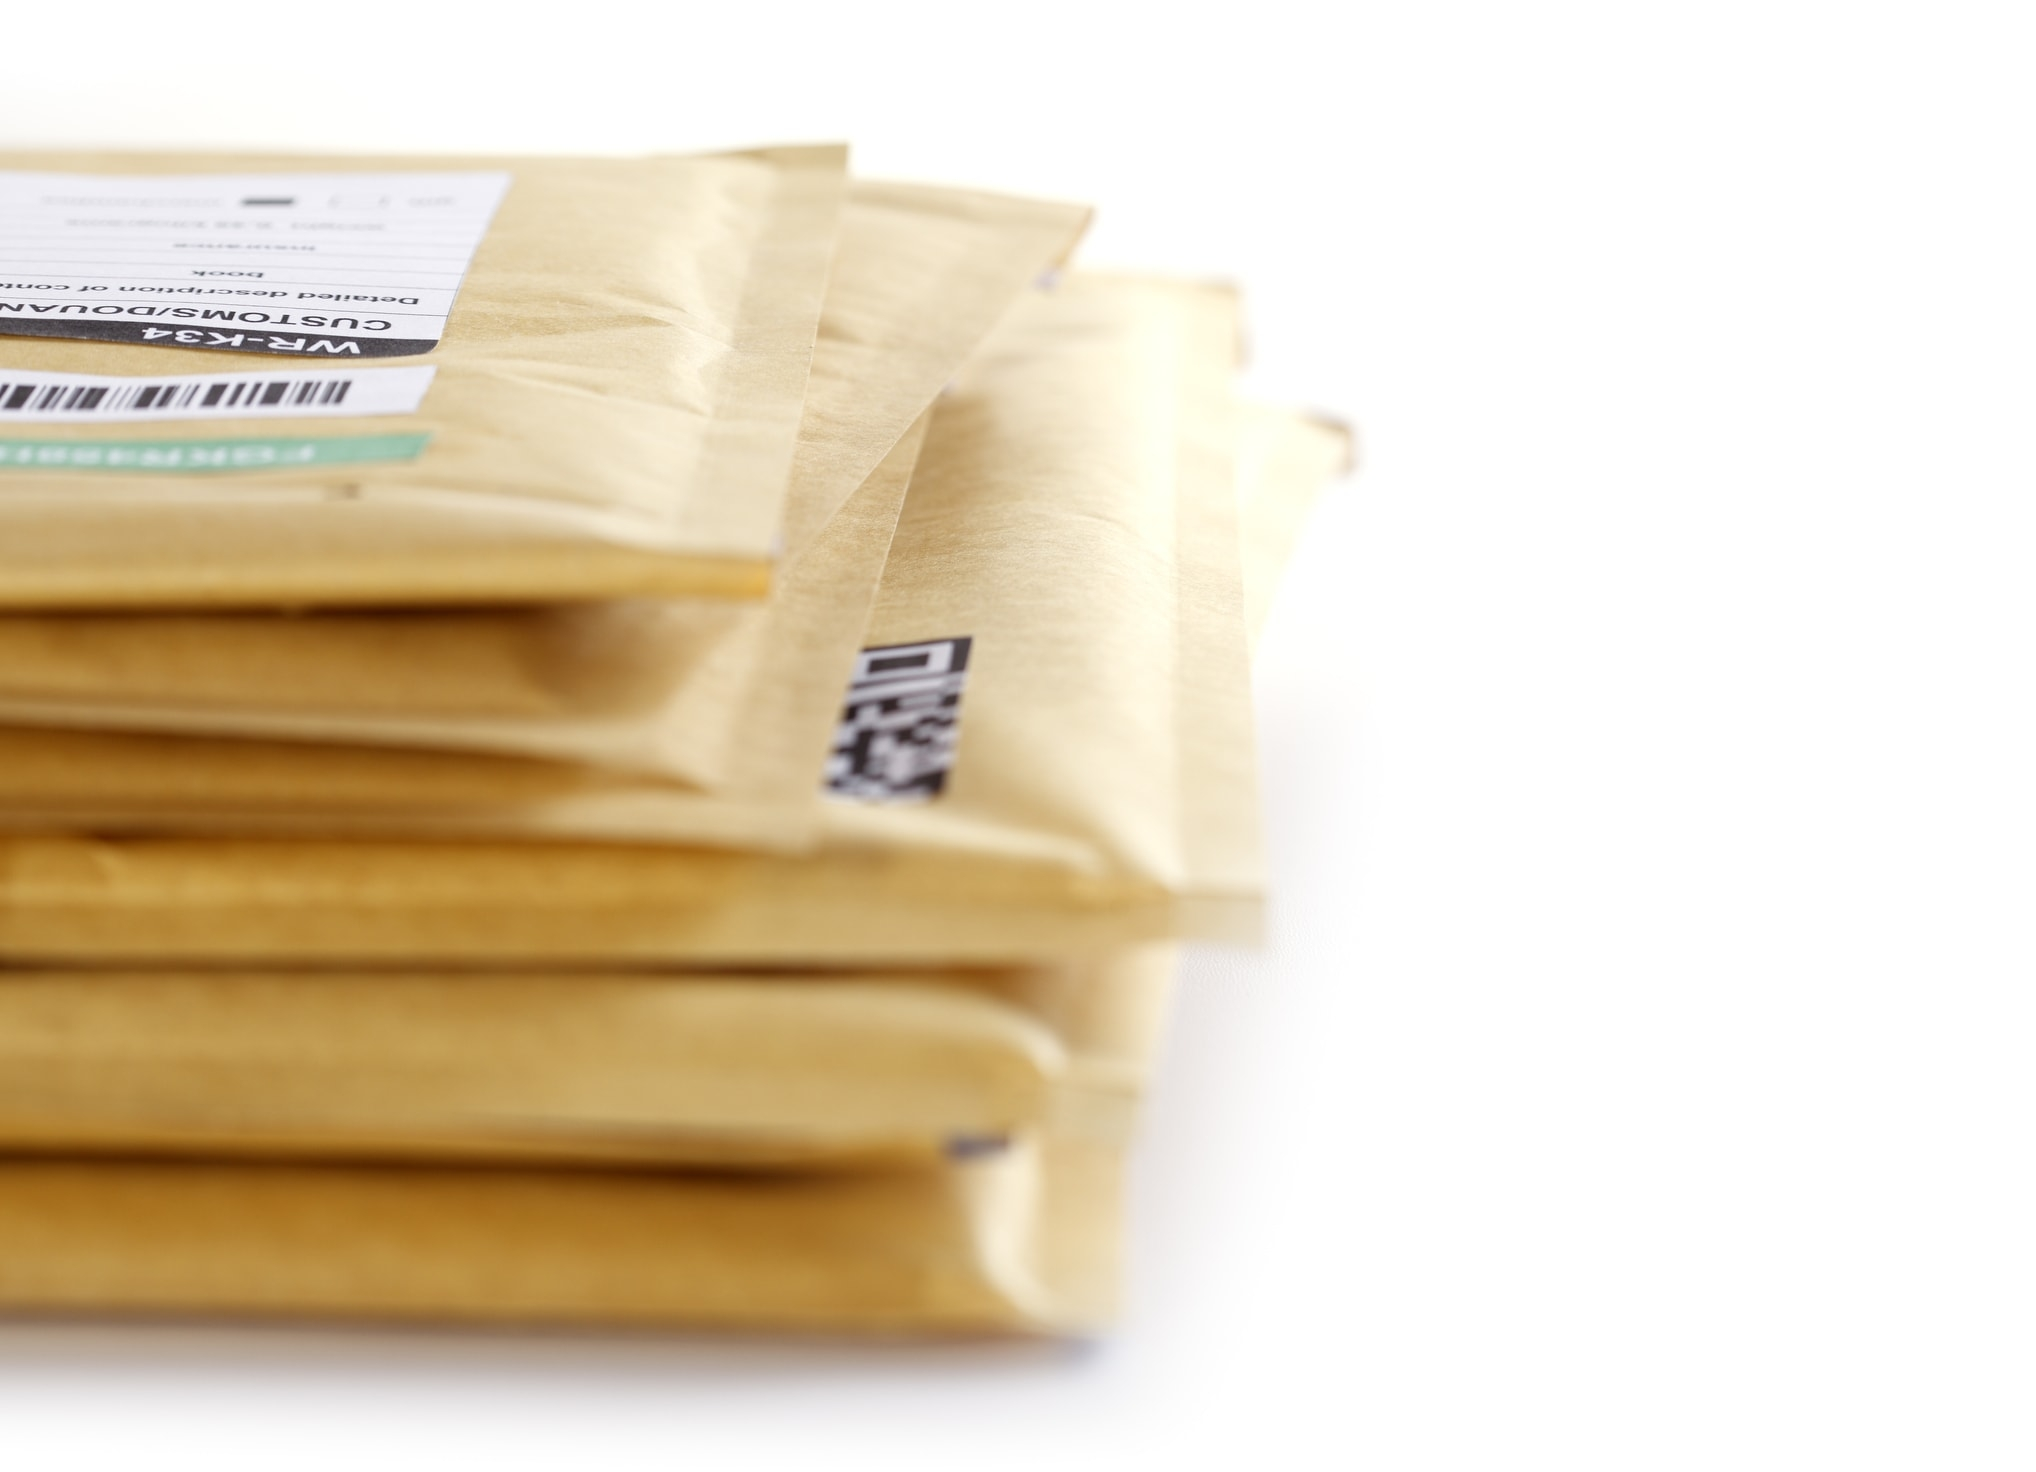 'Are Padded Mailing Envelopes Recyclable?